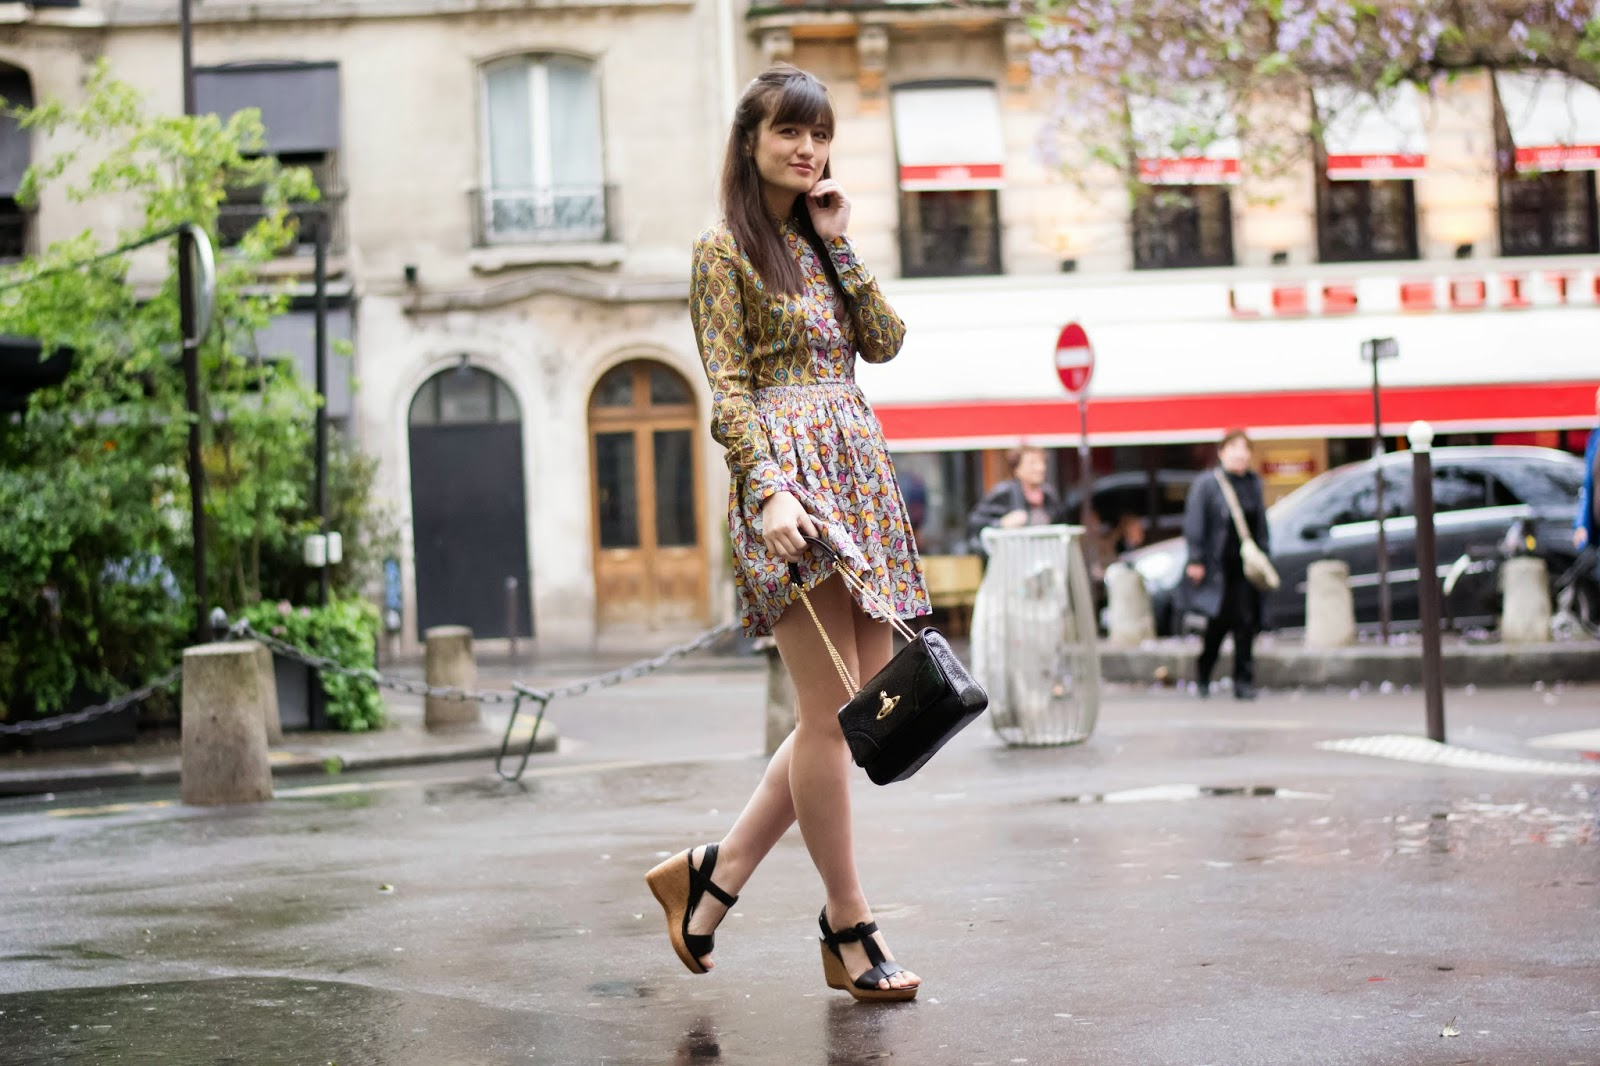 Parisian fashion